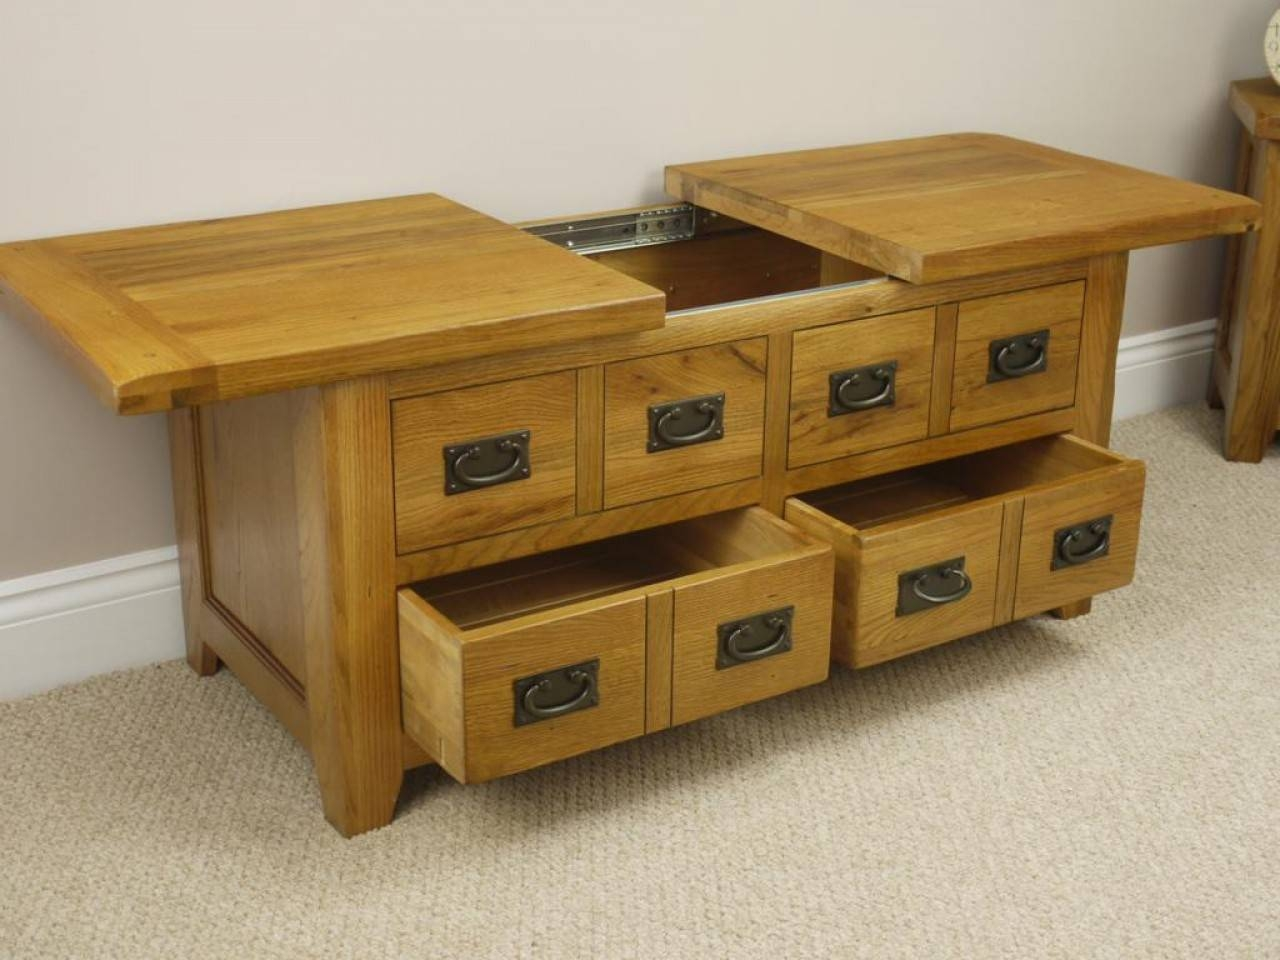 Large Square Oak Coffee Table With Storage | Coffee Tables Decoration regarding Large Coffee Tables With Storage (Image 24 of 30)